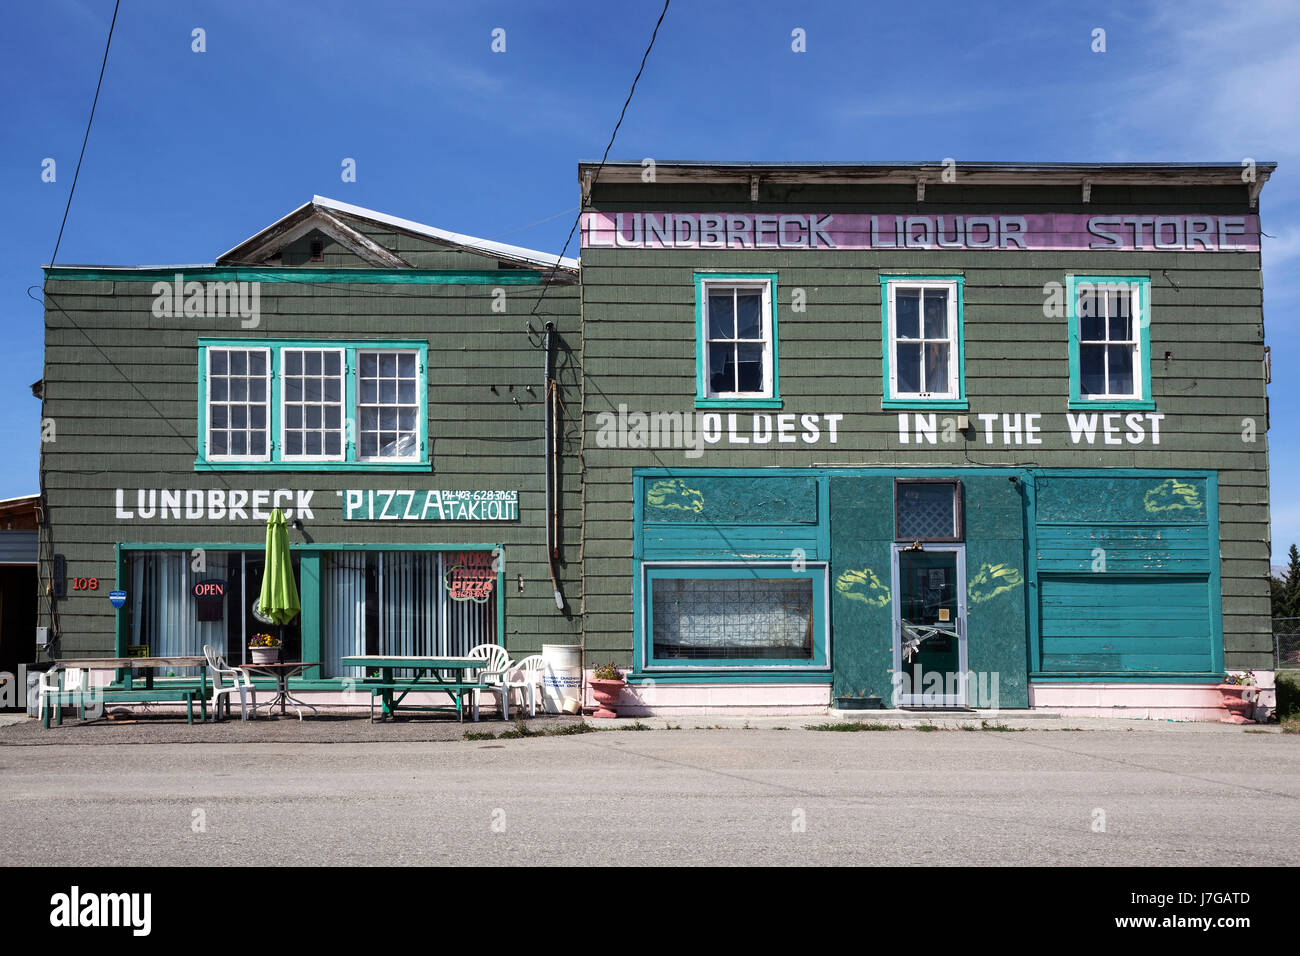 Restaurant, pizzeria, typical house with wooden facade, Lundbreck, Alberta, Canada - Stock Image